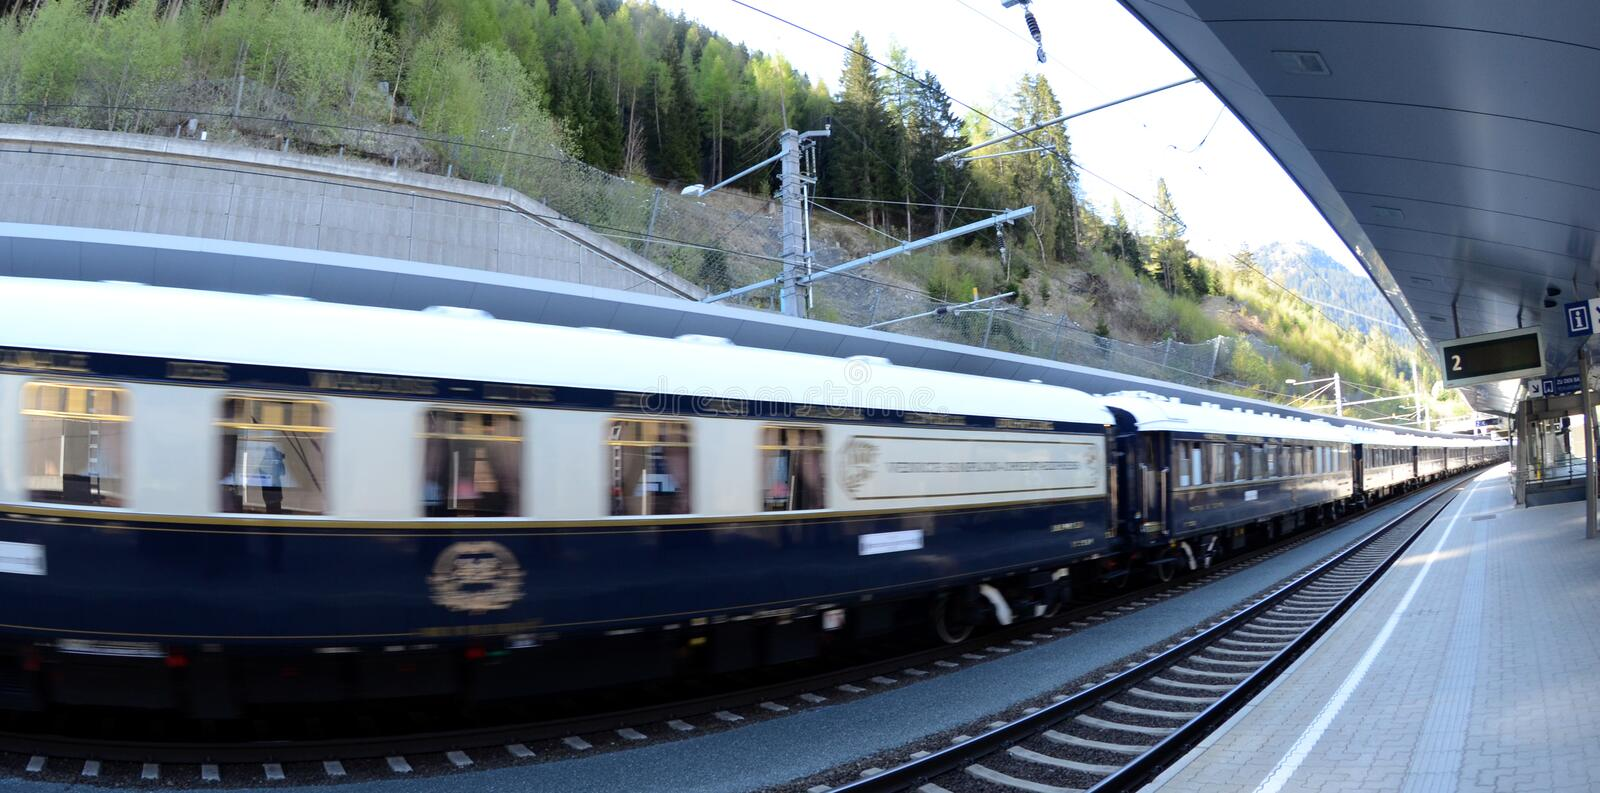 The Venice Simplon-Orient-Express in motion stock photography